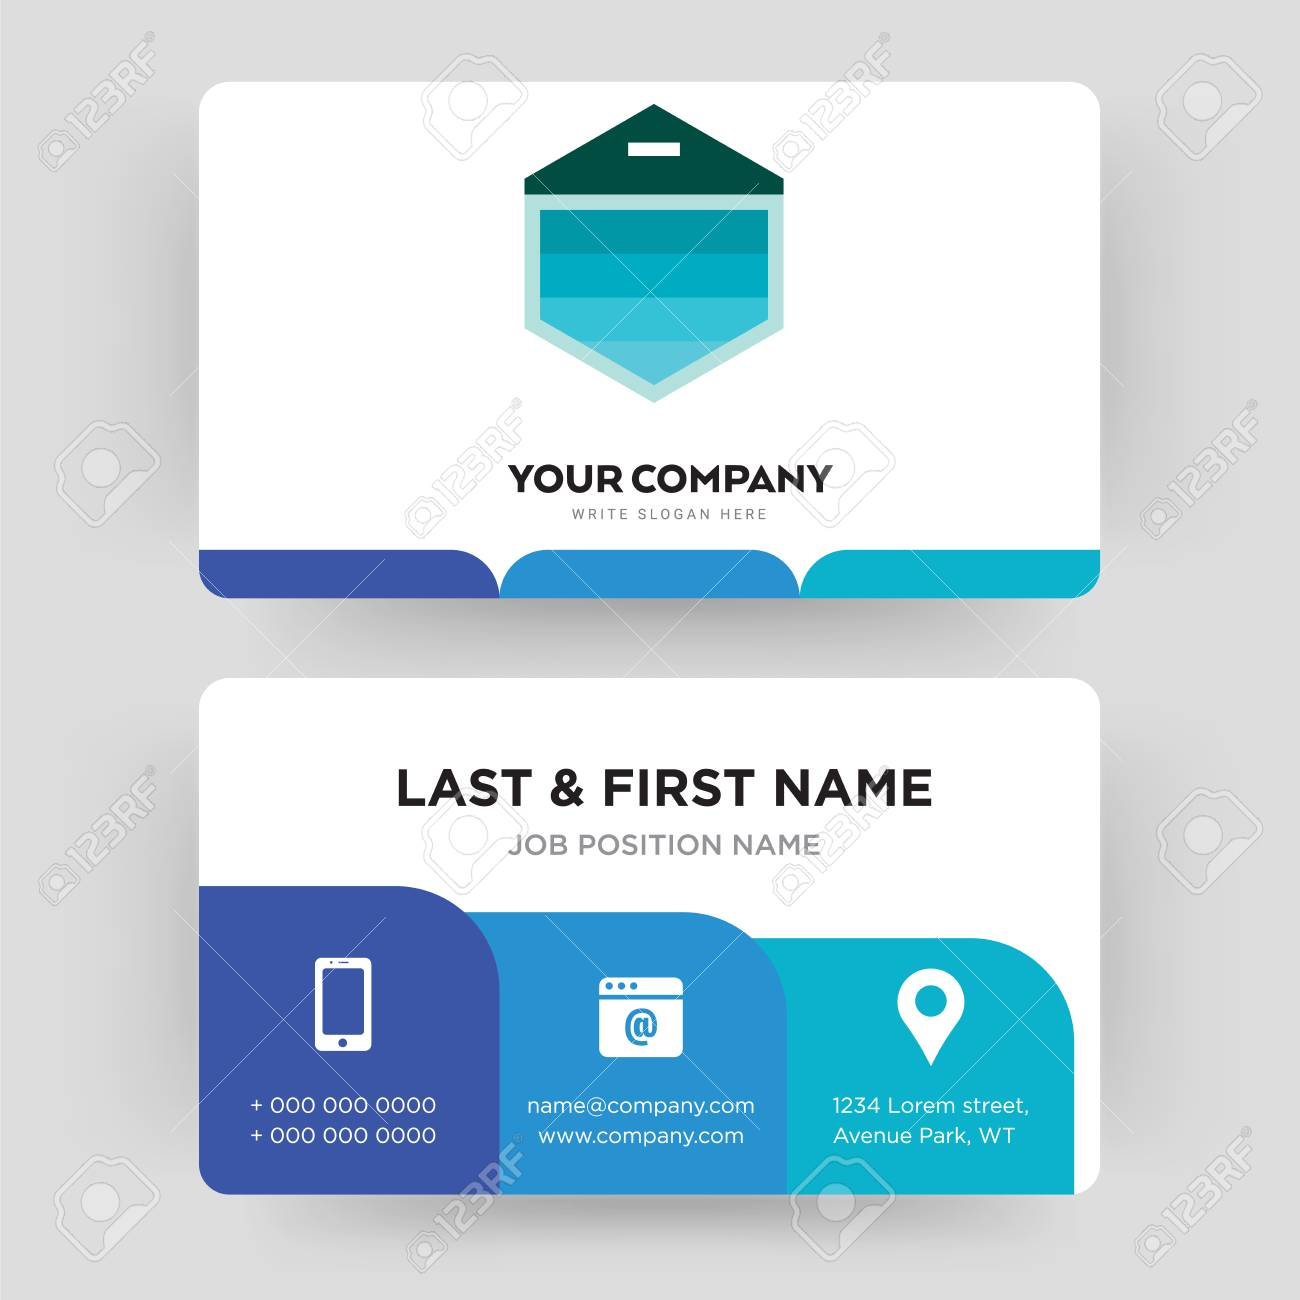 Garage Design Template Garage Door Business Card Design Template Visiting For Your